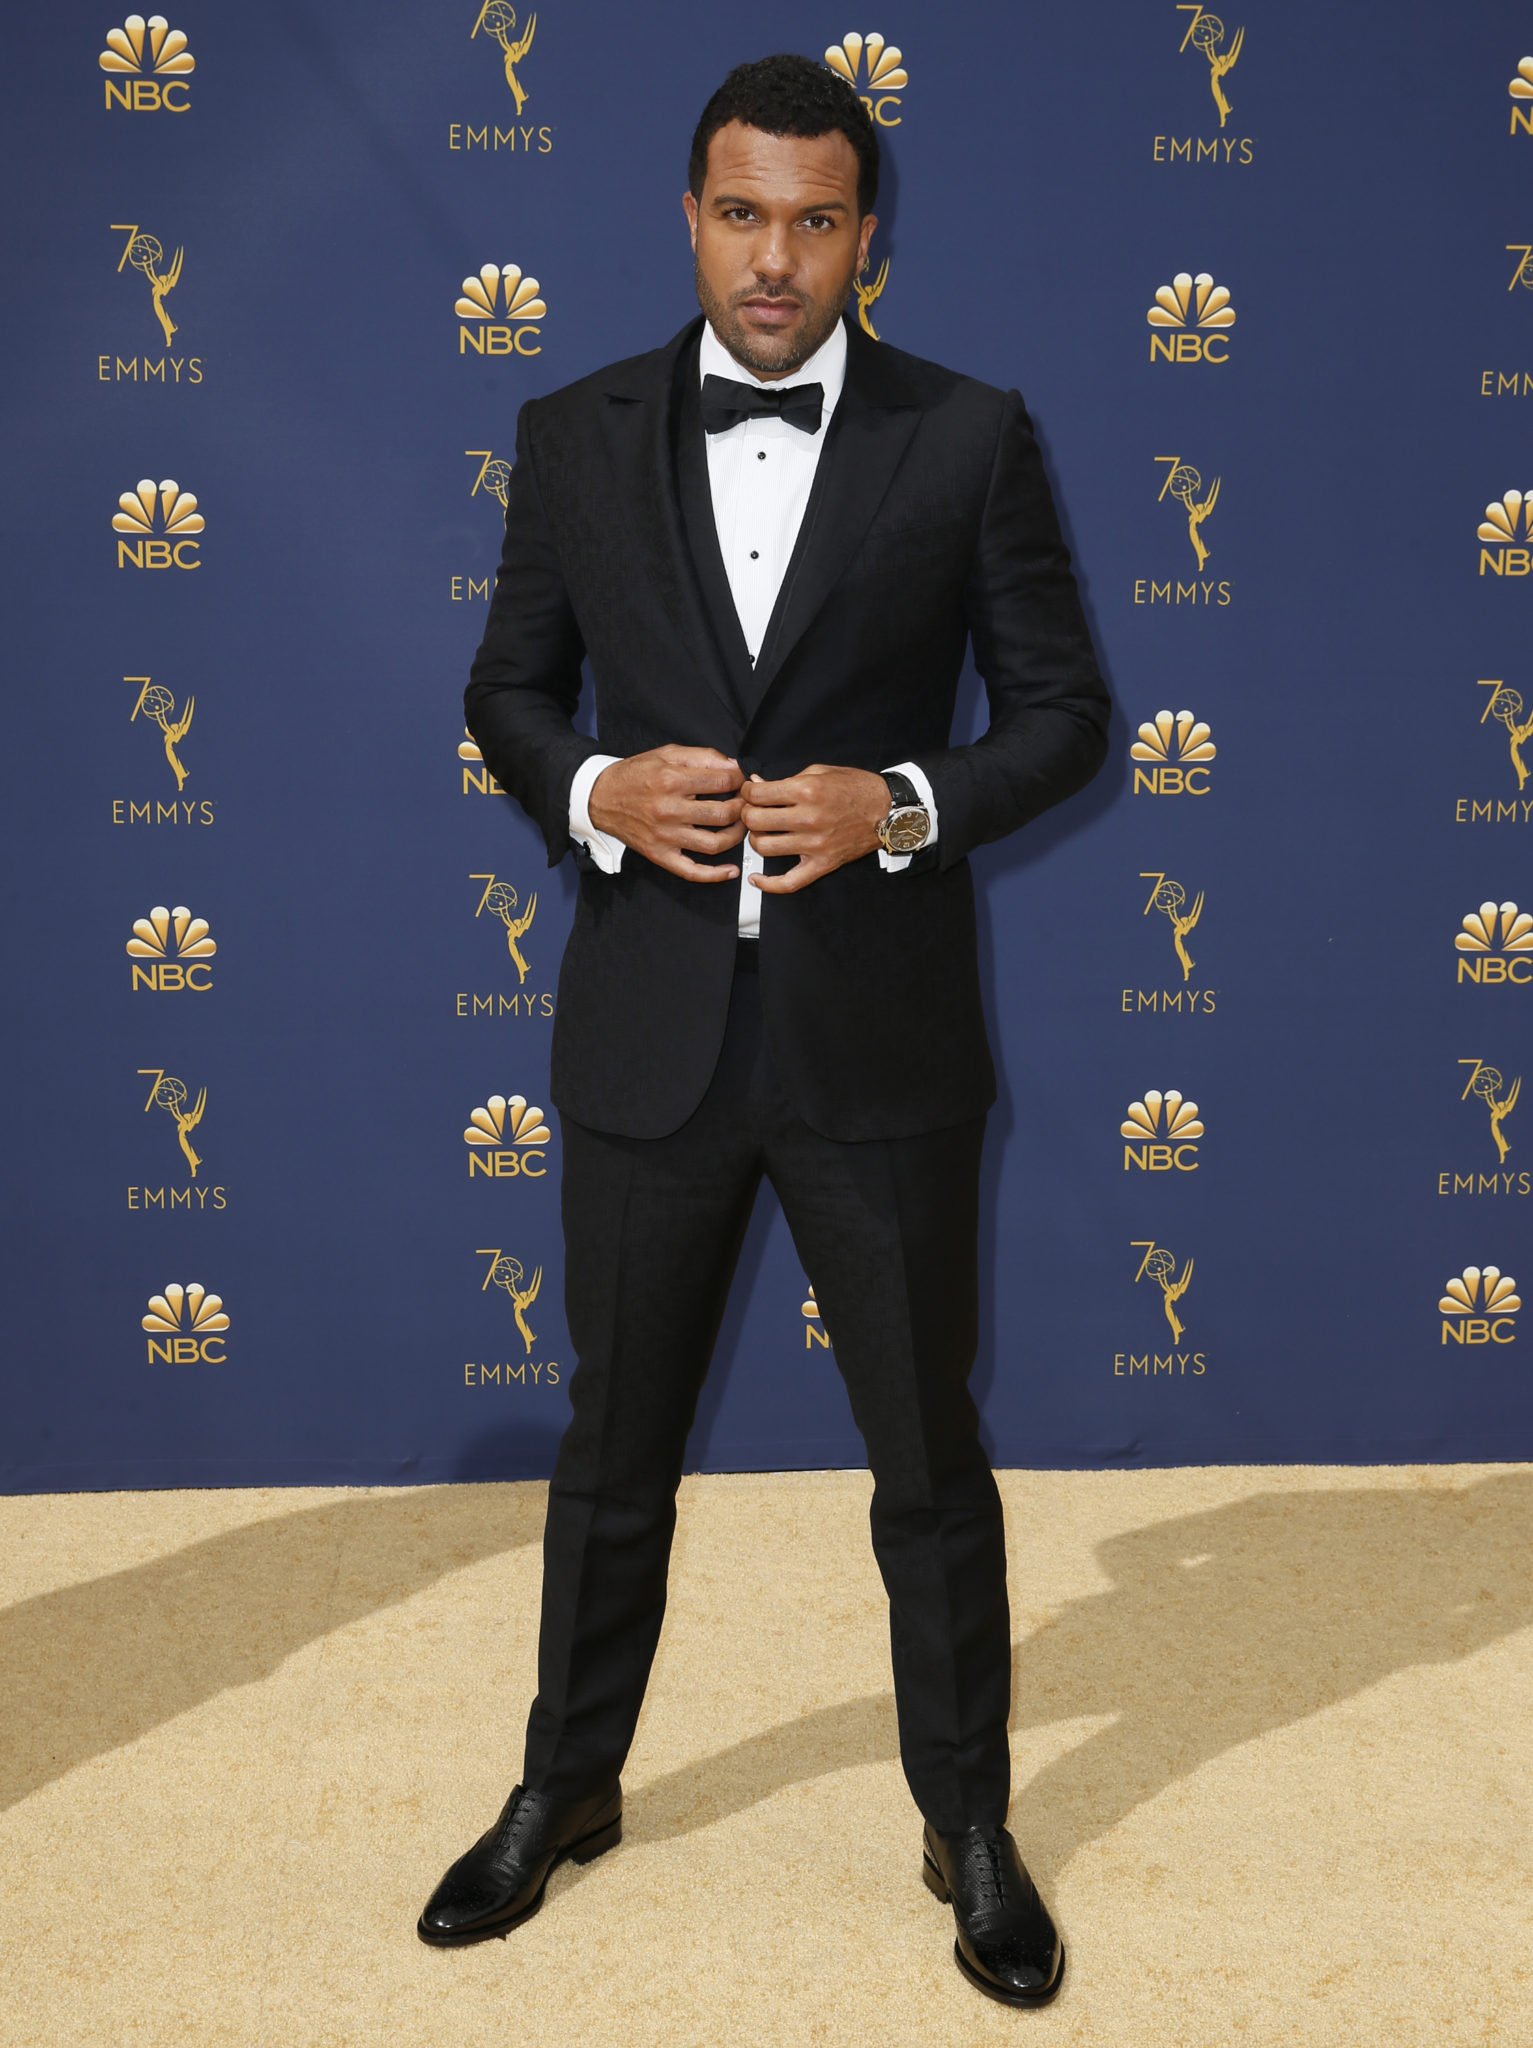 O. T. Fagbenle Emmys 4Chion Lifestyle